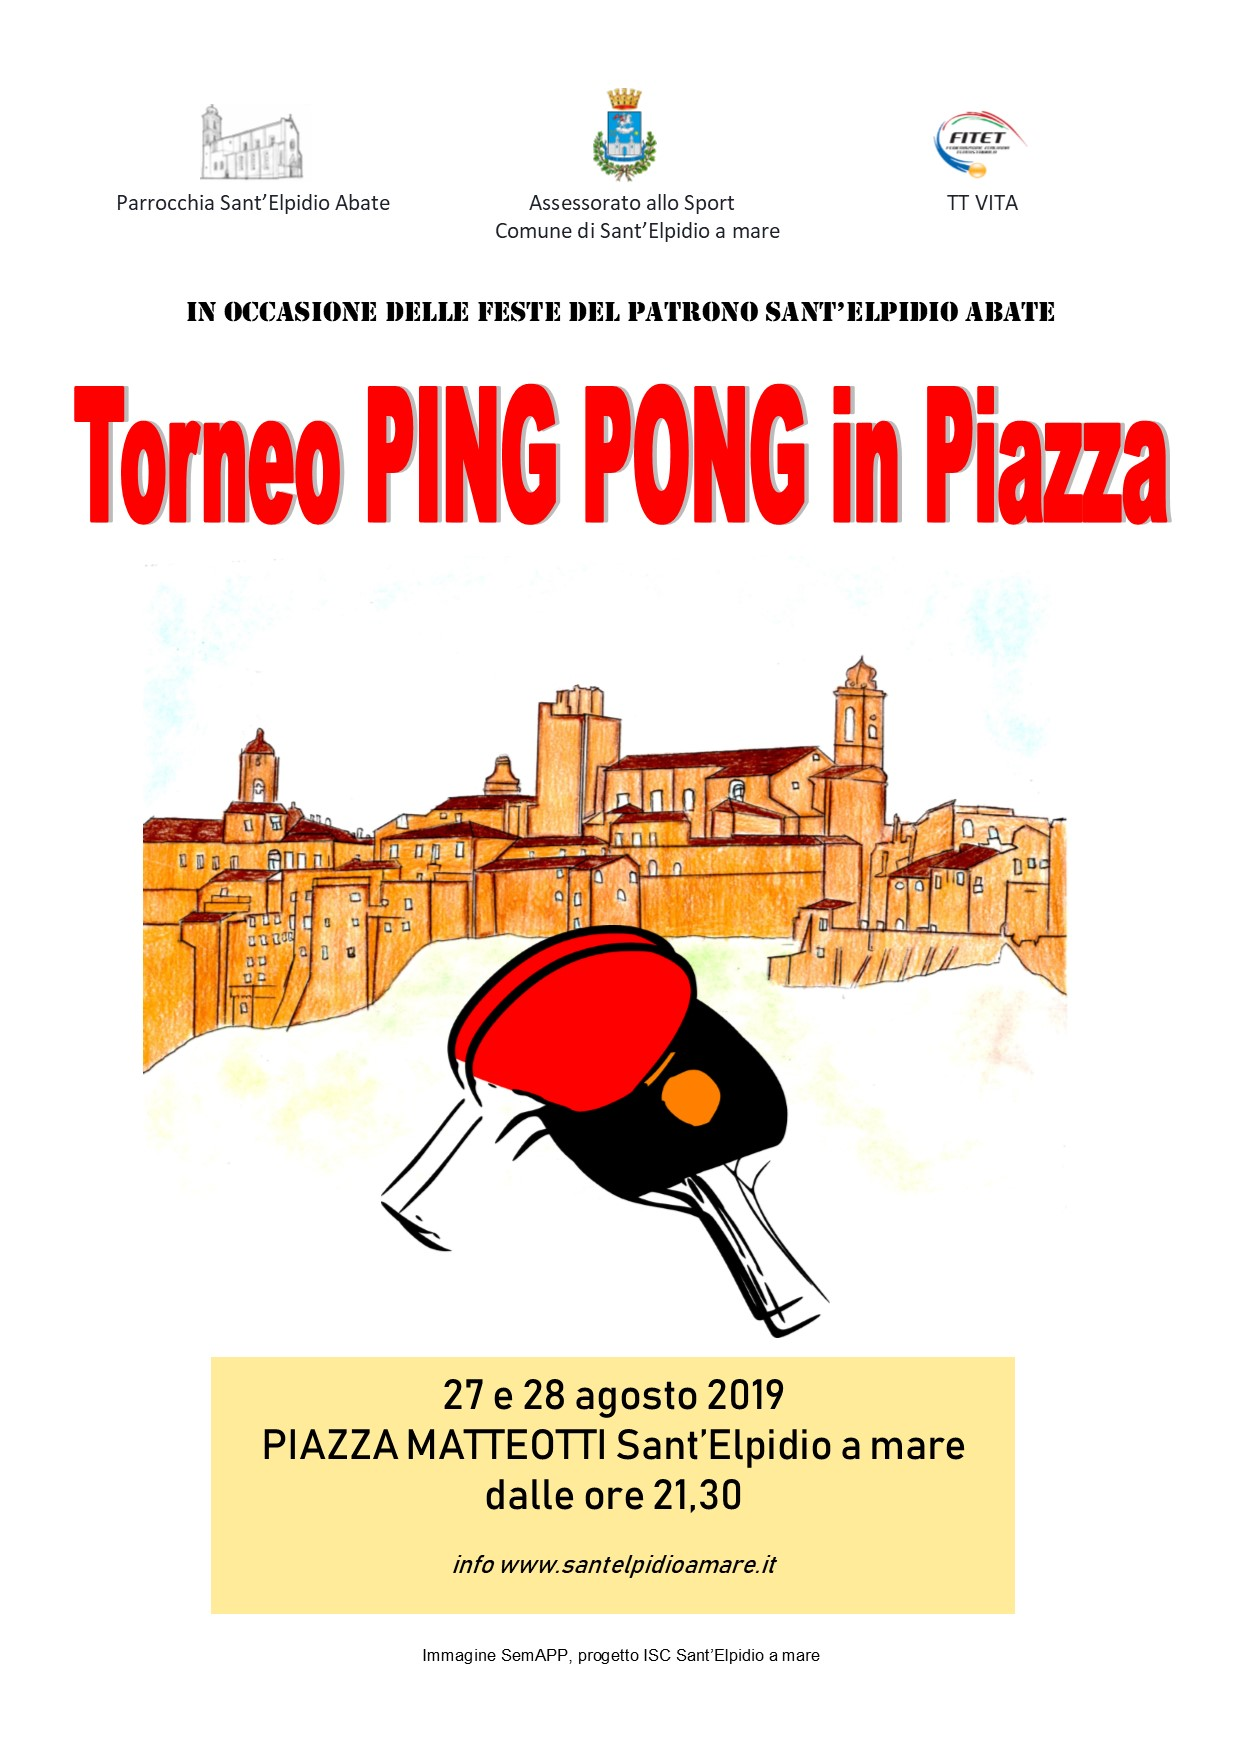 TORNEO DI PING PONG IN PIAZZA